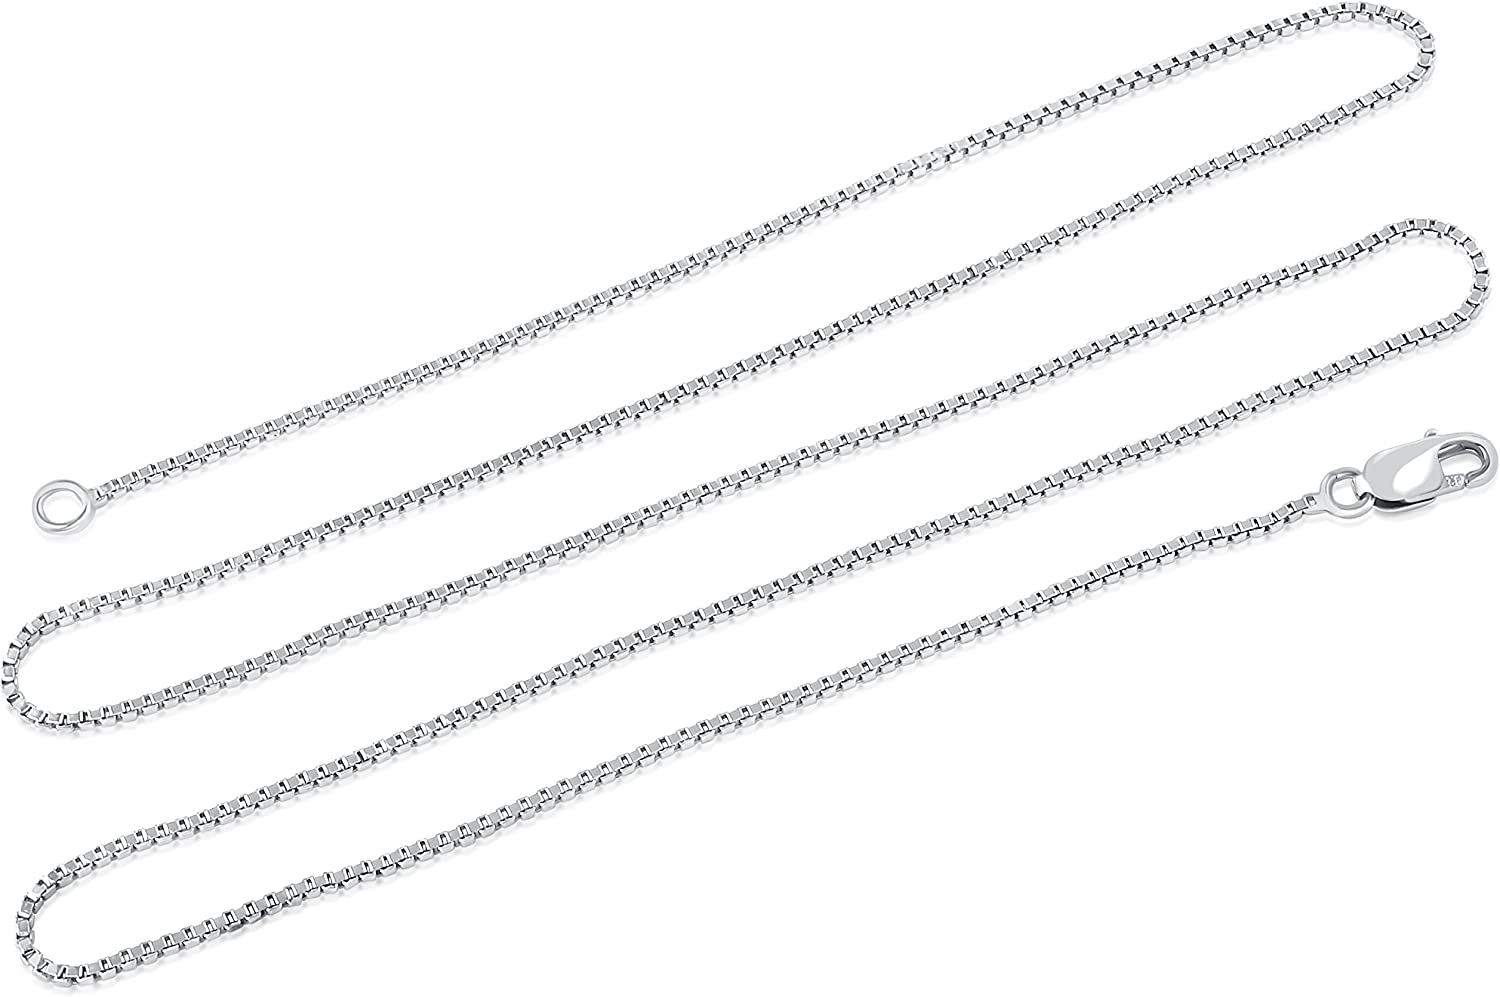 11//16 inch wide Sterling Silver Cable Necklace in Rose Gold /& Rhodium Finishes /& Round Ceramic